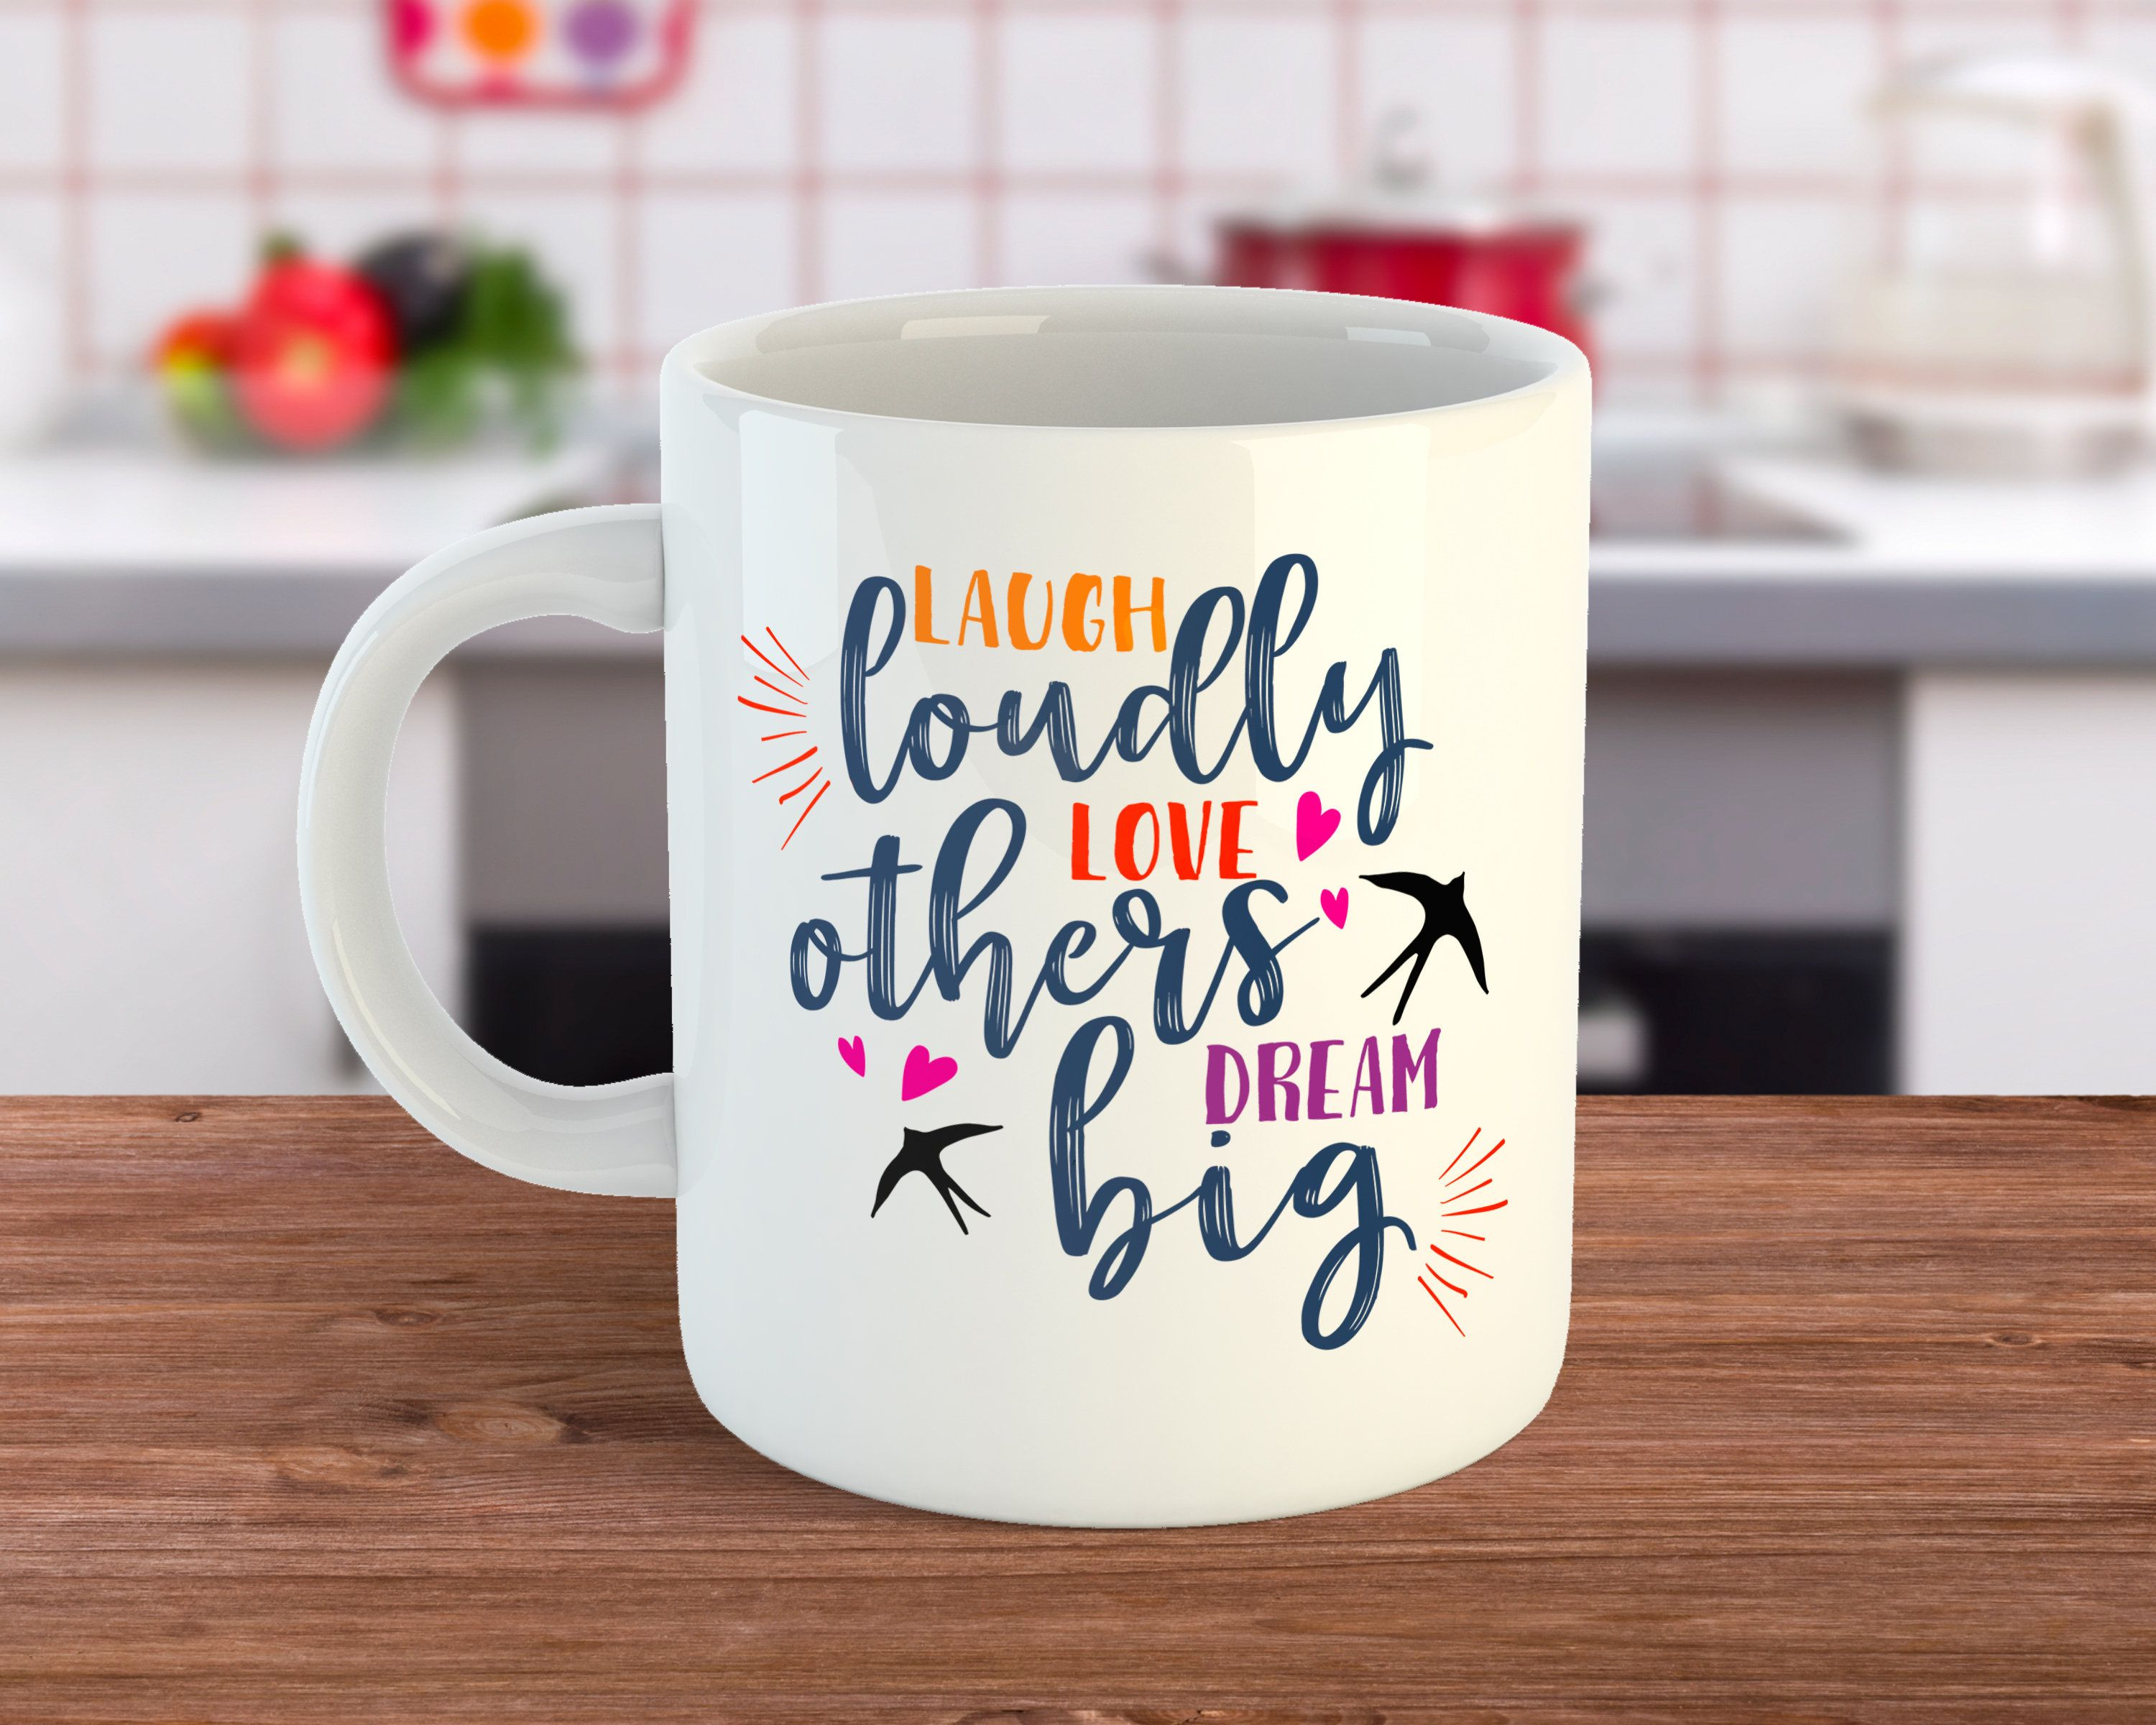 Laugh Loudly Love Others Dream Big Positive Gift Coffee Mug Https Etsy Me 2vait3y Positive Gift Mugs Cute Coffee Mugs